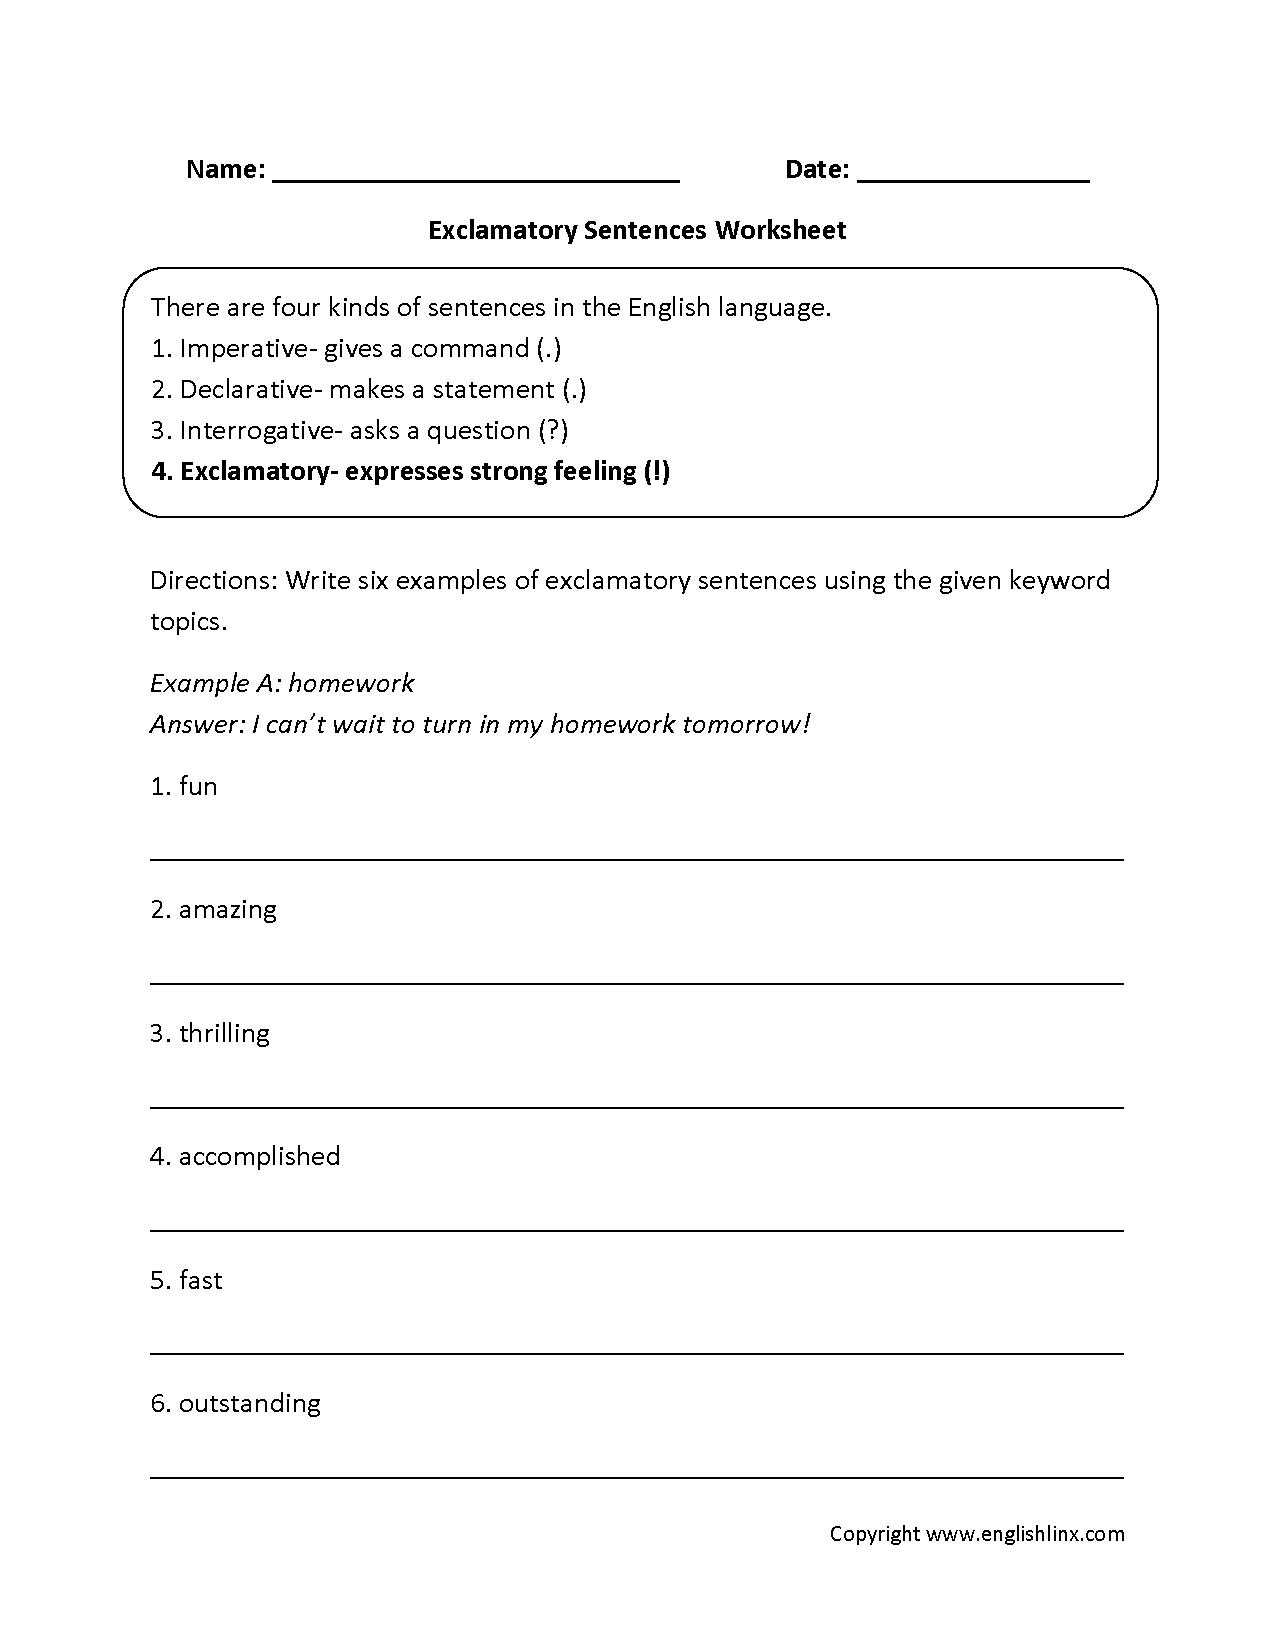 Worksheets Four Types Of Sentences Worksheet exclamatory types of sentences worksheets education language this is the section learning will help with writing there are four of